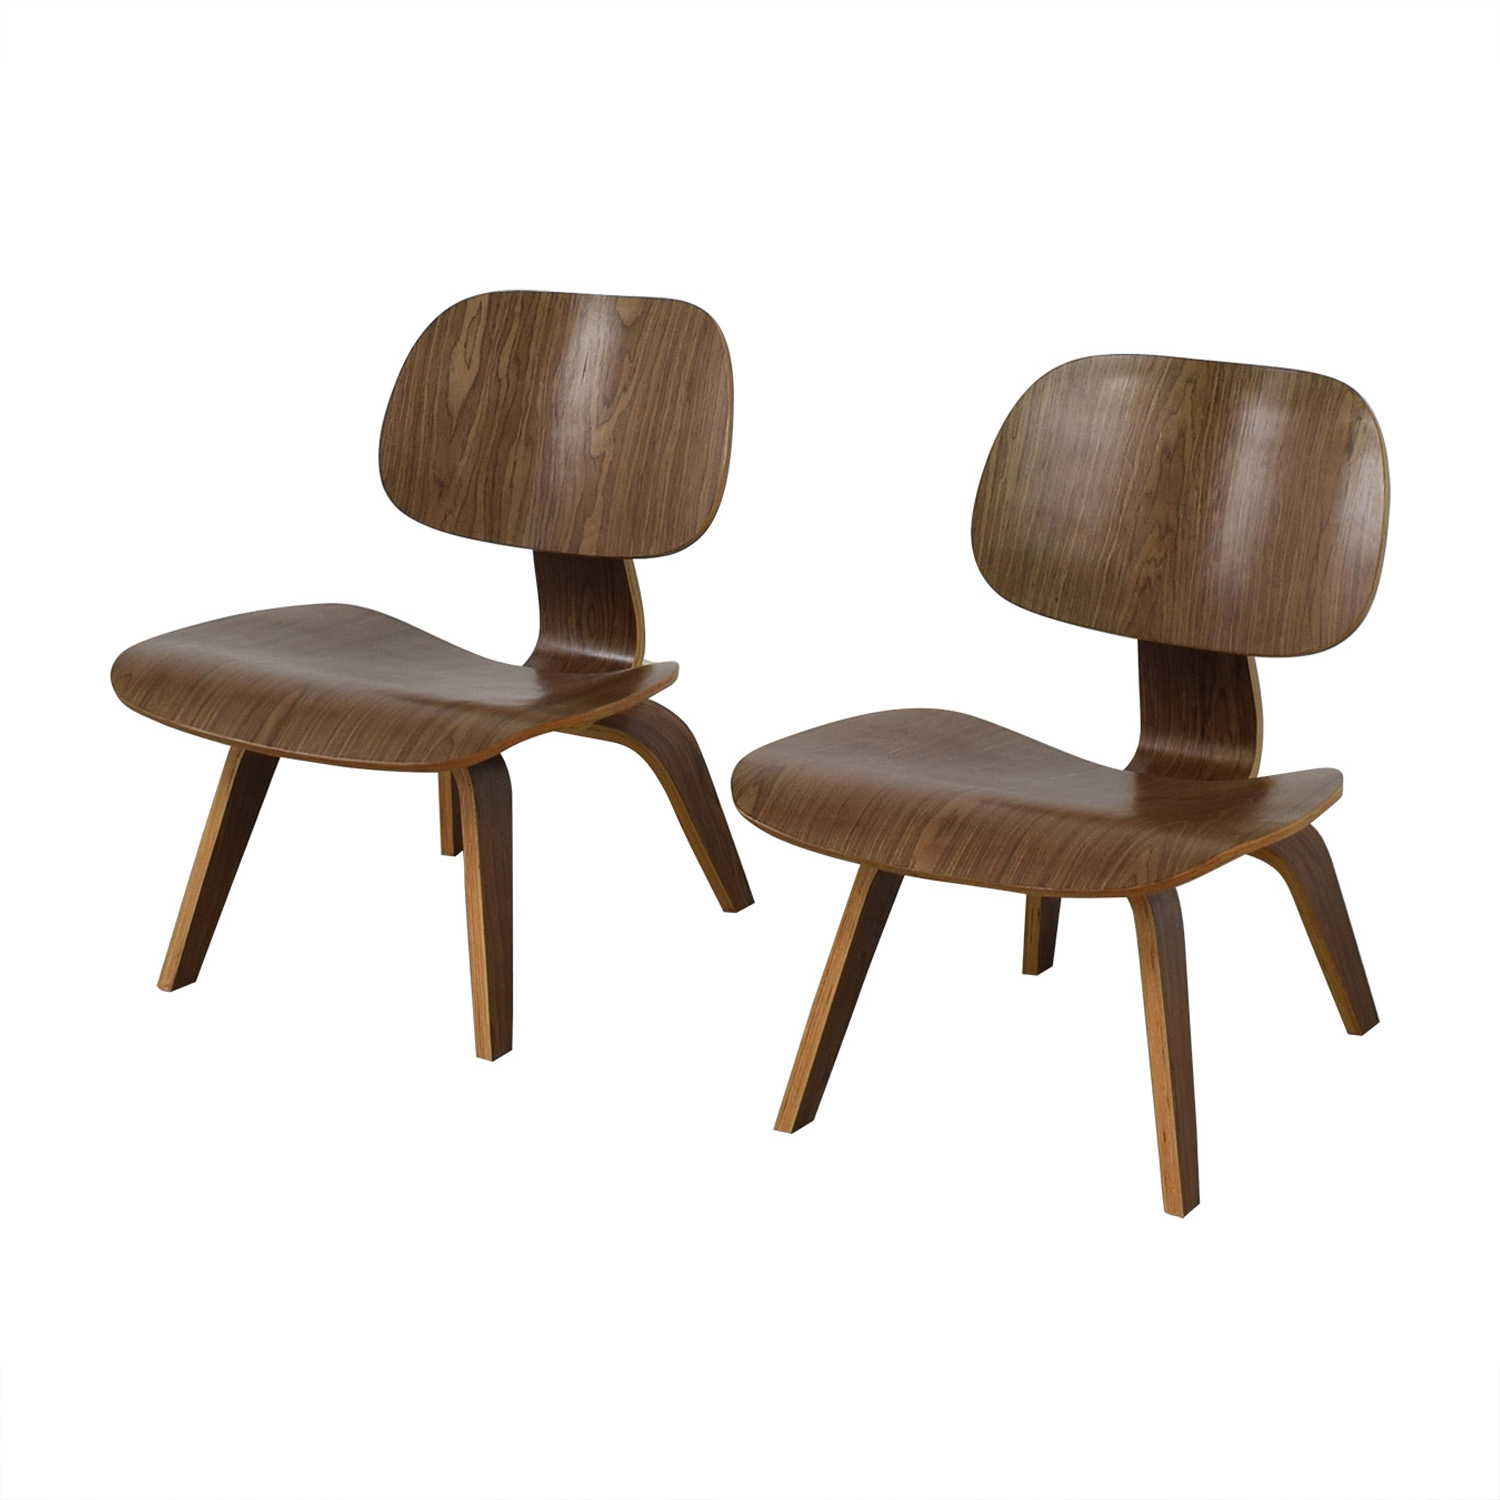 shop Modway Natural Fathom Plywood Dining Chairs Modway Chairs